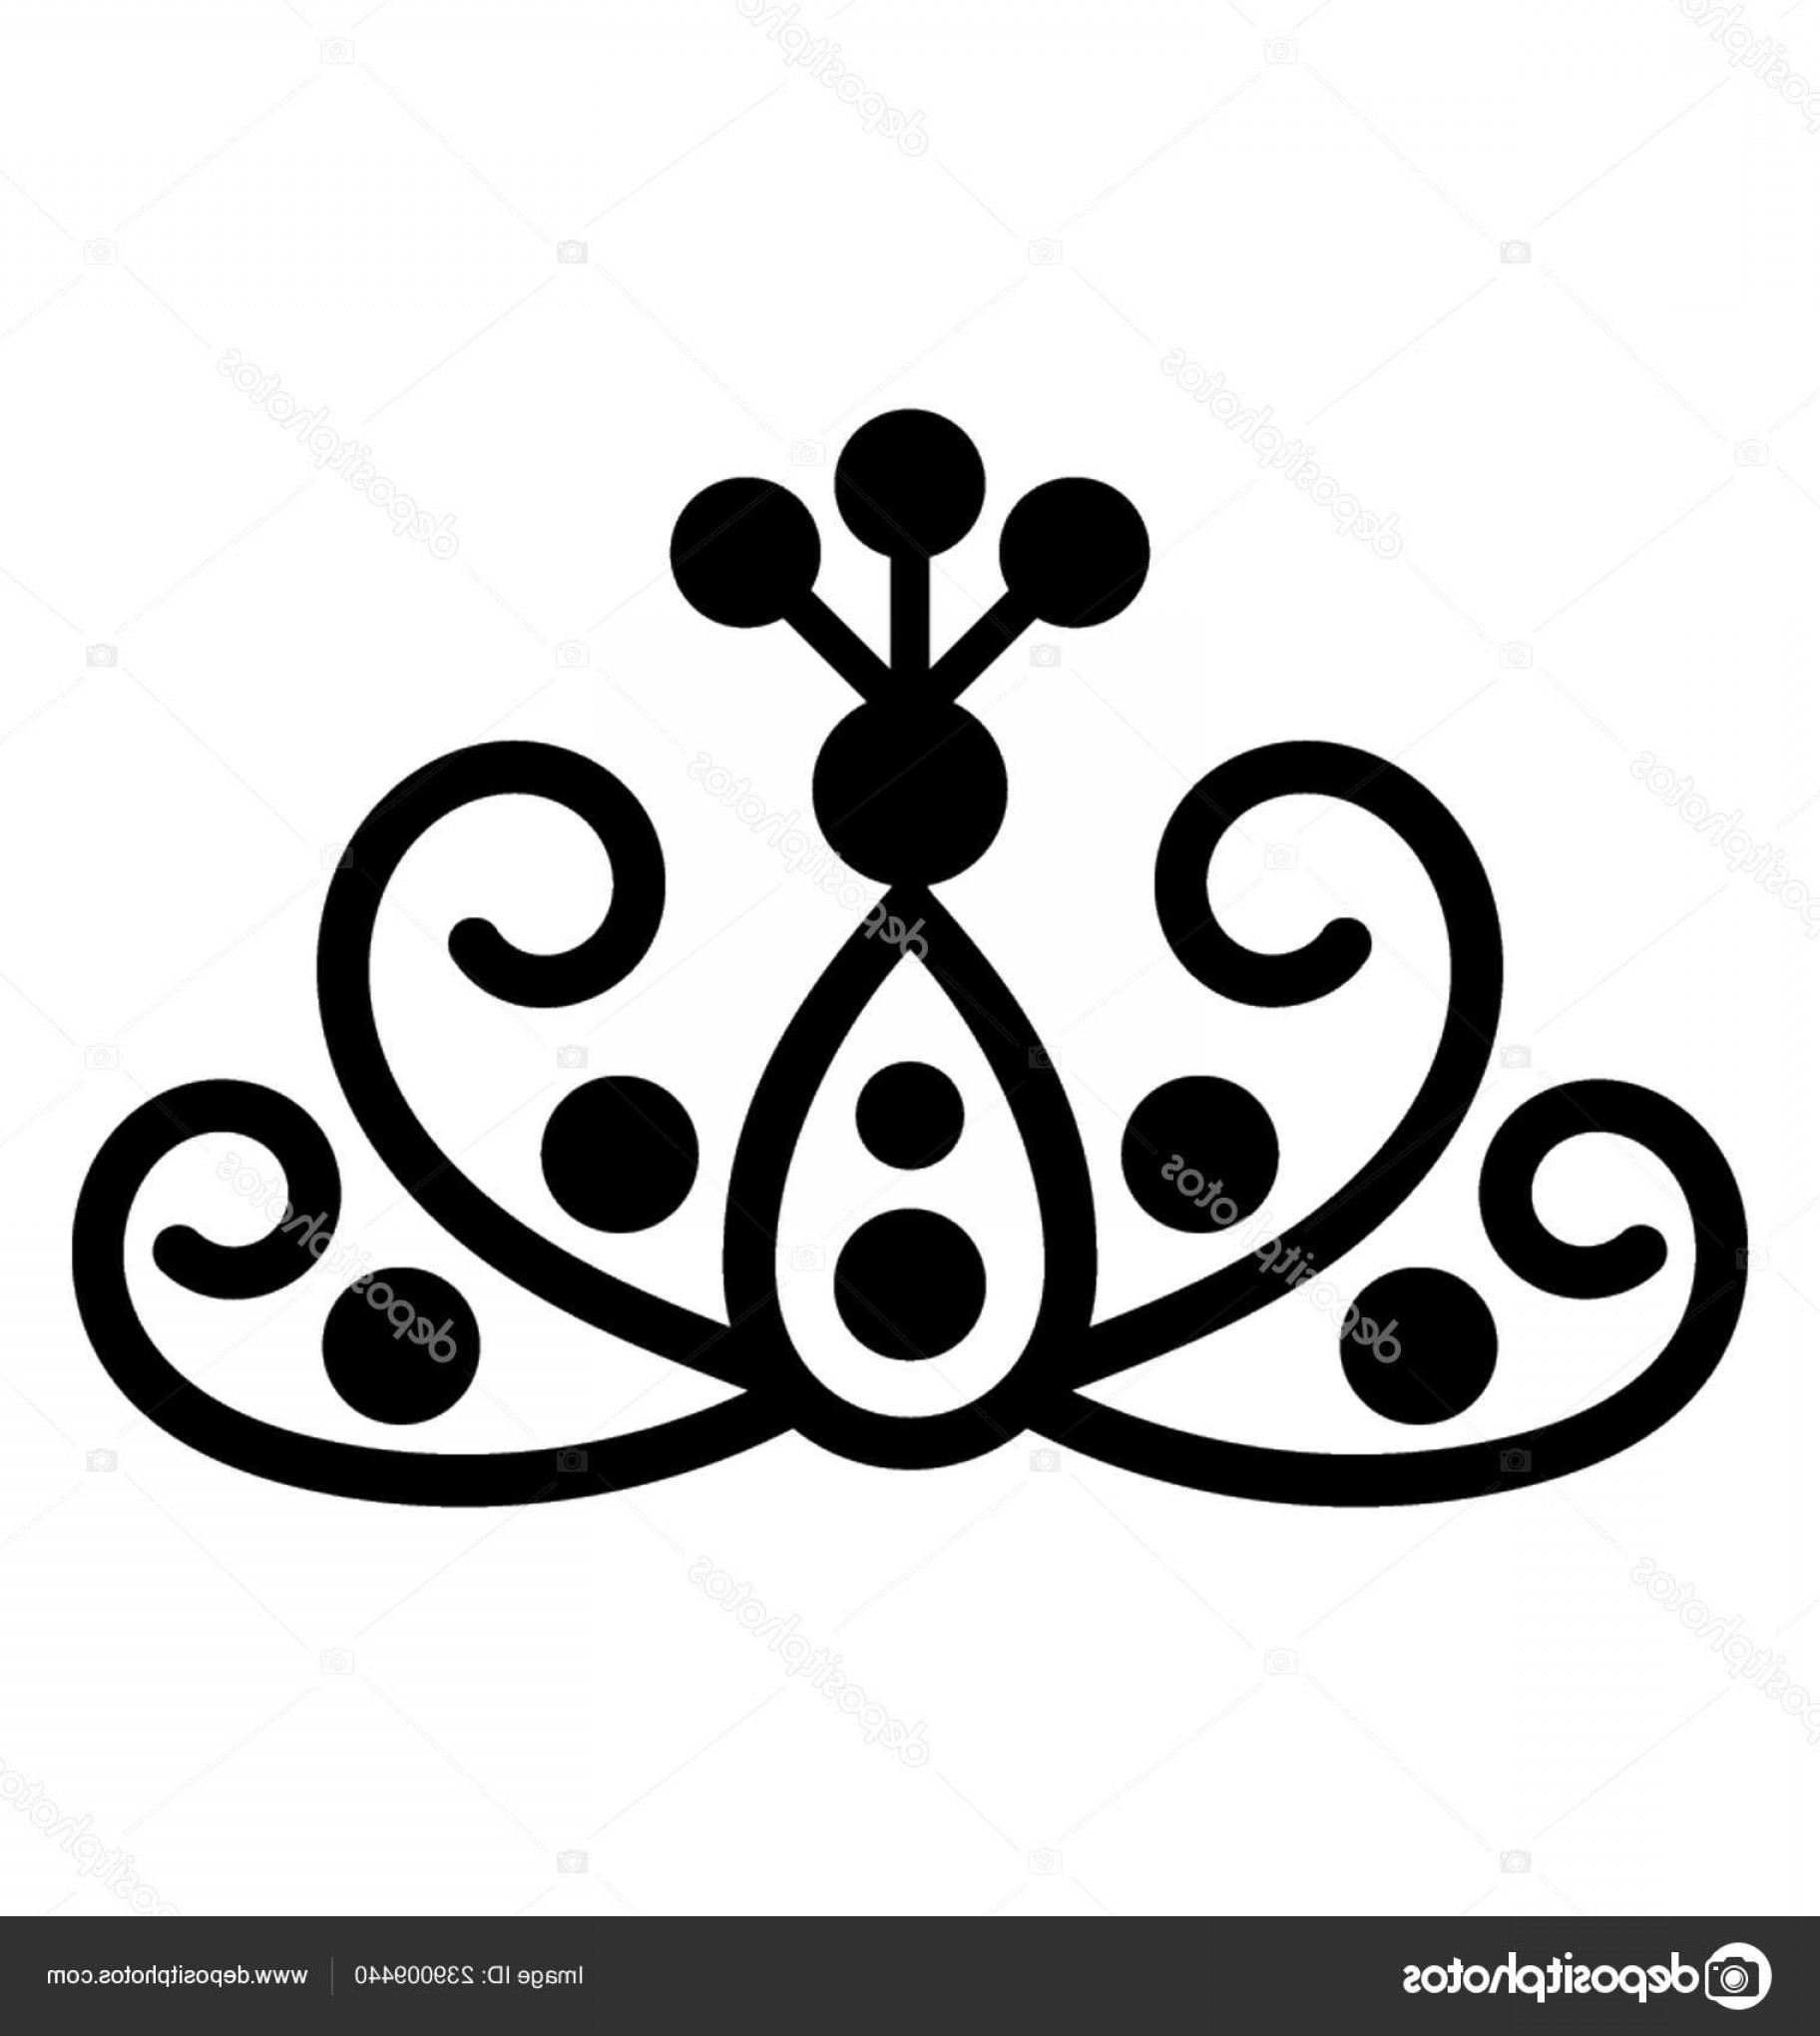 Princess Crown Vector Graphic: Stock Illustration Princess Crown Precious Crown Symbol